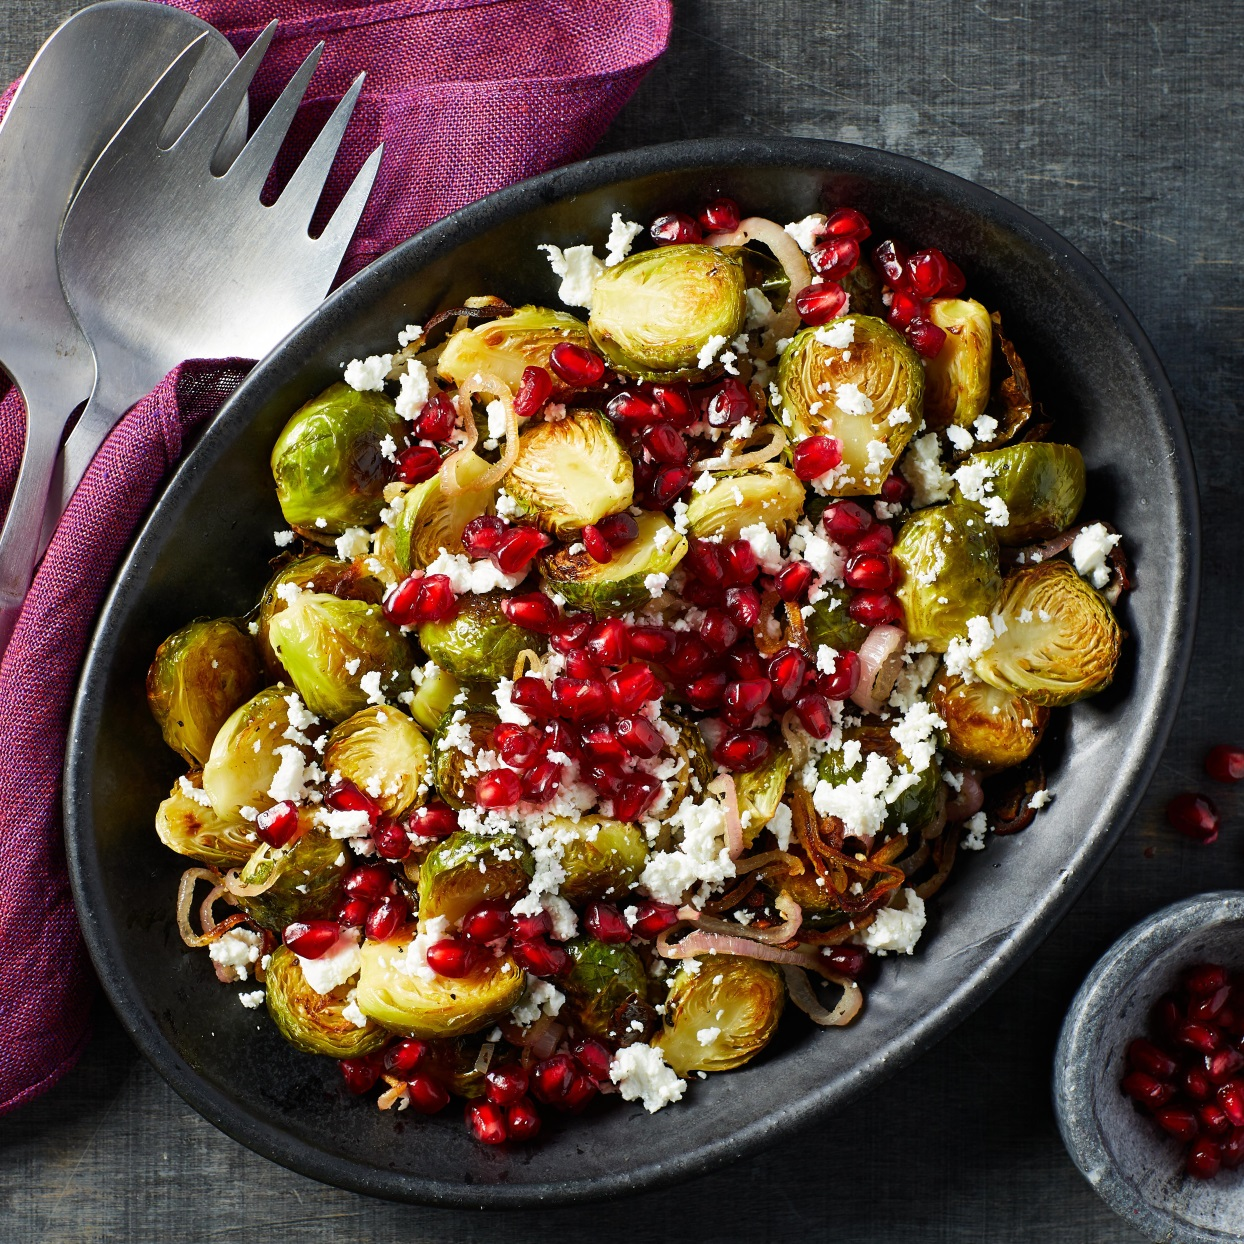 Roasted Brussels Sprouts with Goat Cheese & Pomegranate Trusted Brands